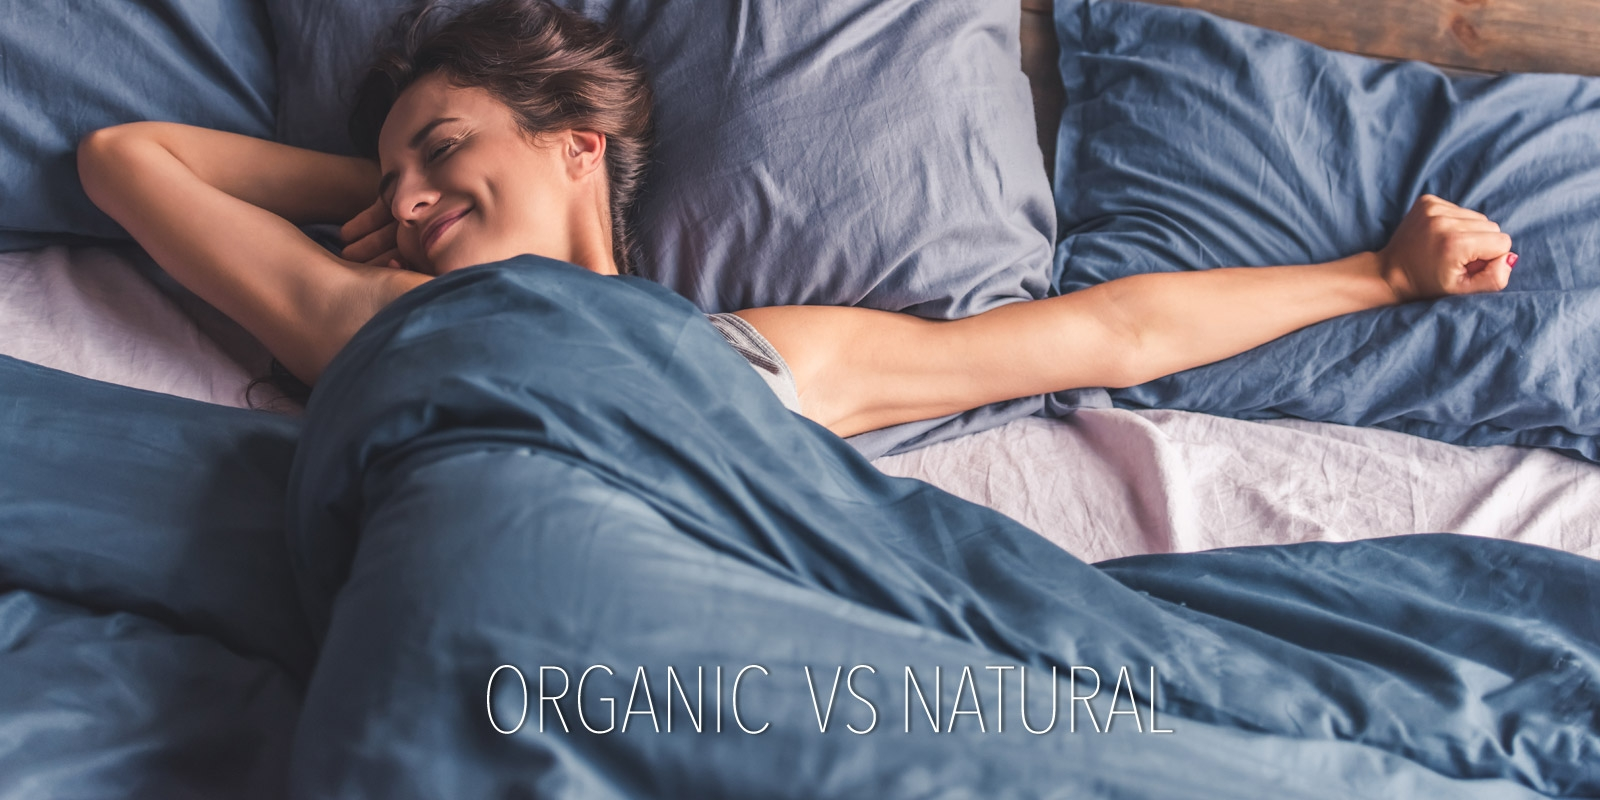 Organic Futon Mattresses vs. Natural Mattresses